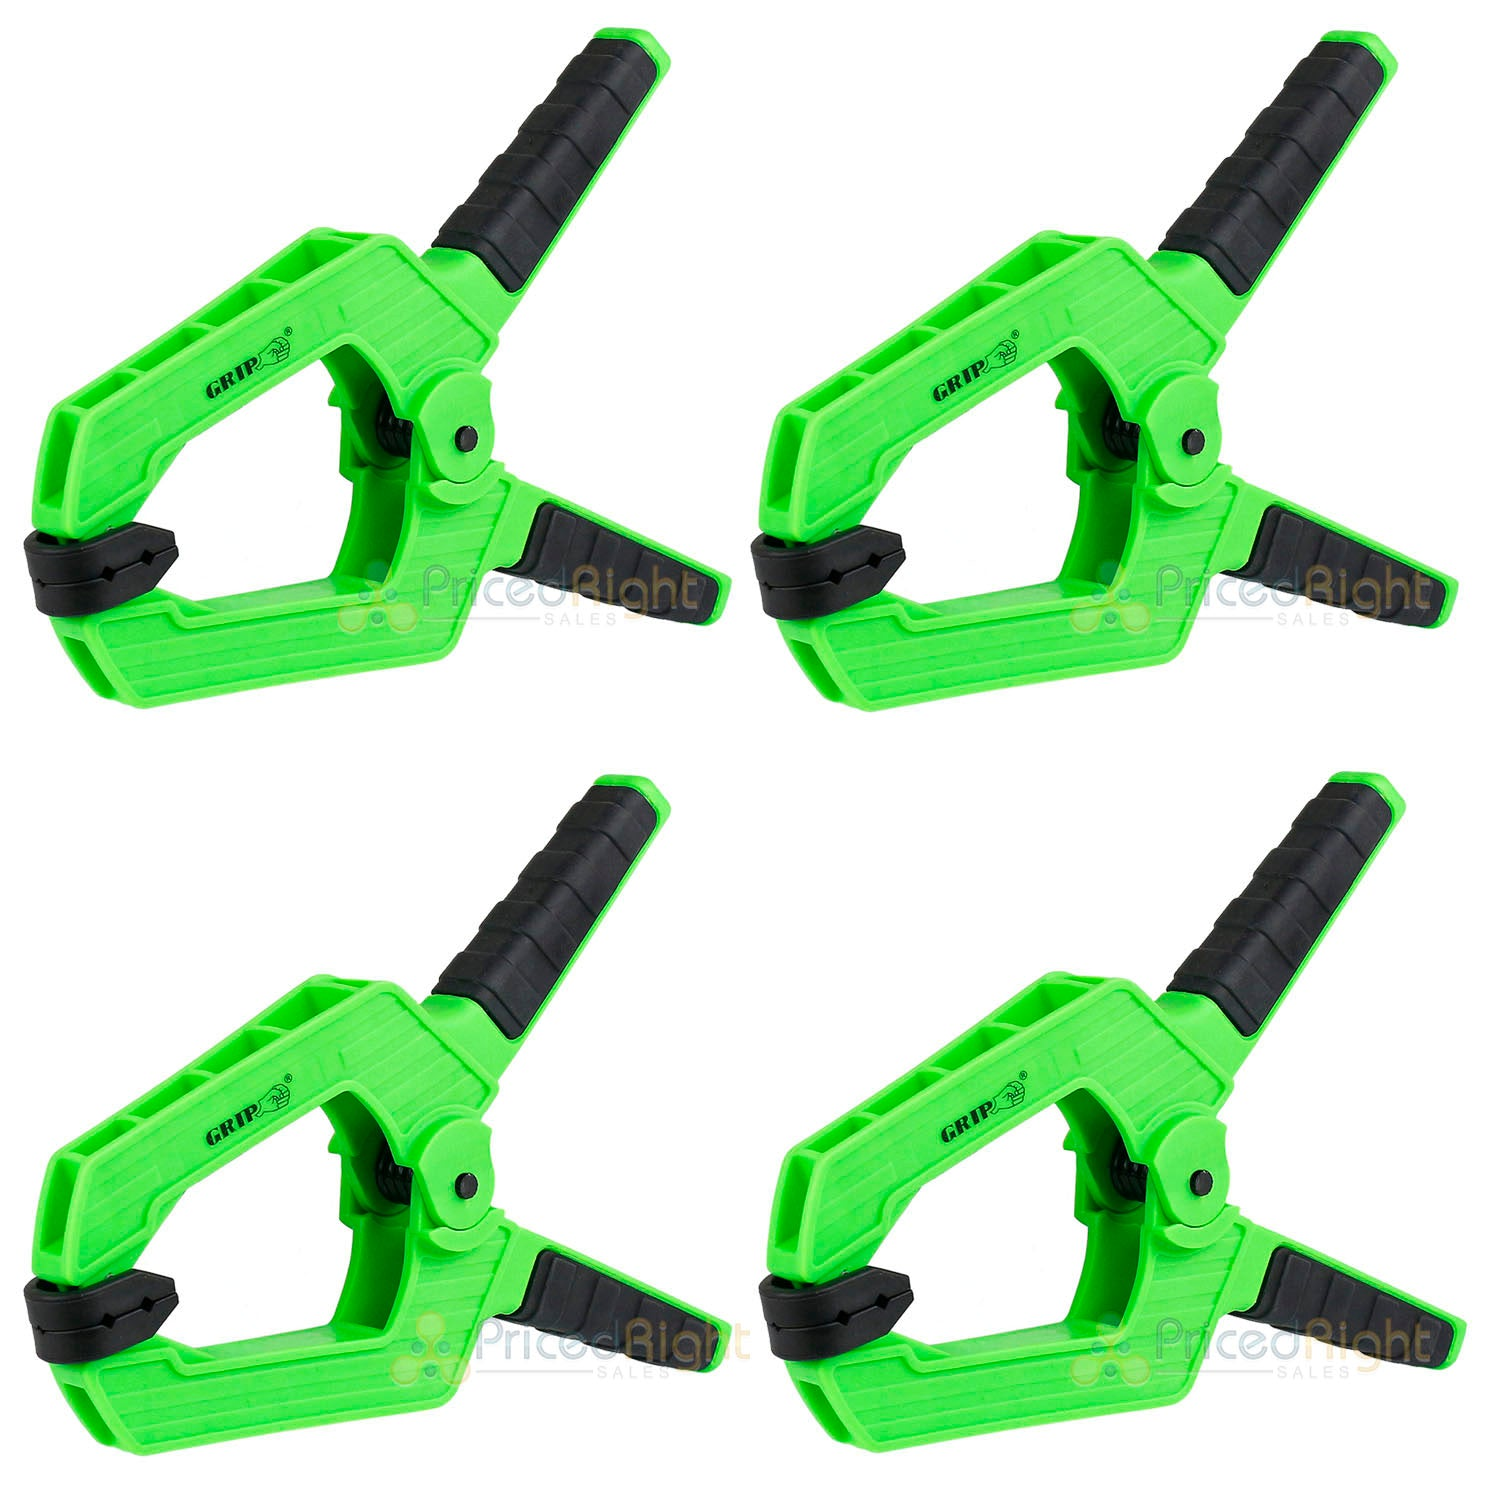 "4 Pack Heavy Duty 9"" Spring Clamps Thermoplastic Anti-Slip Grip Tools 34009"